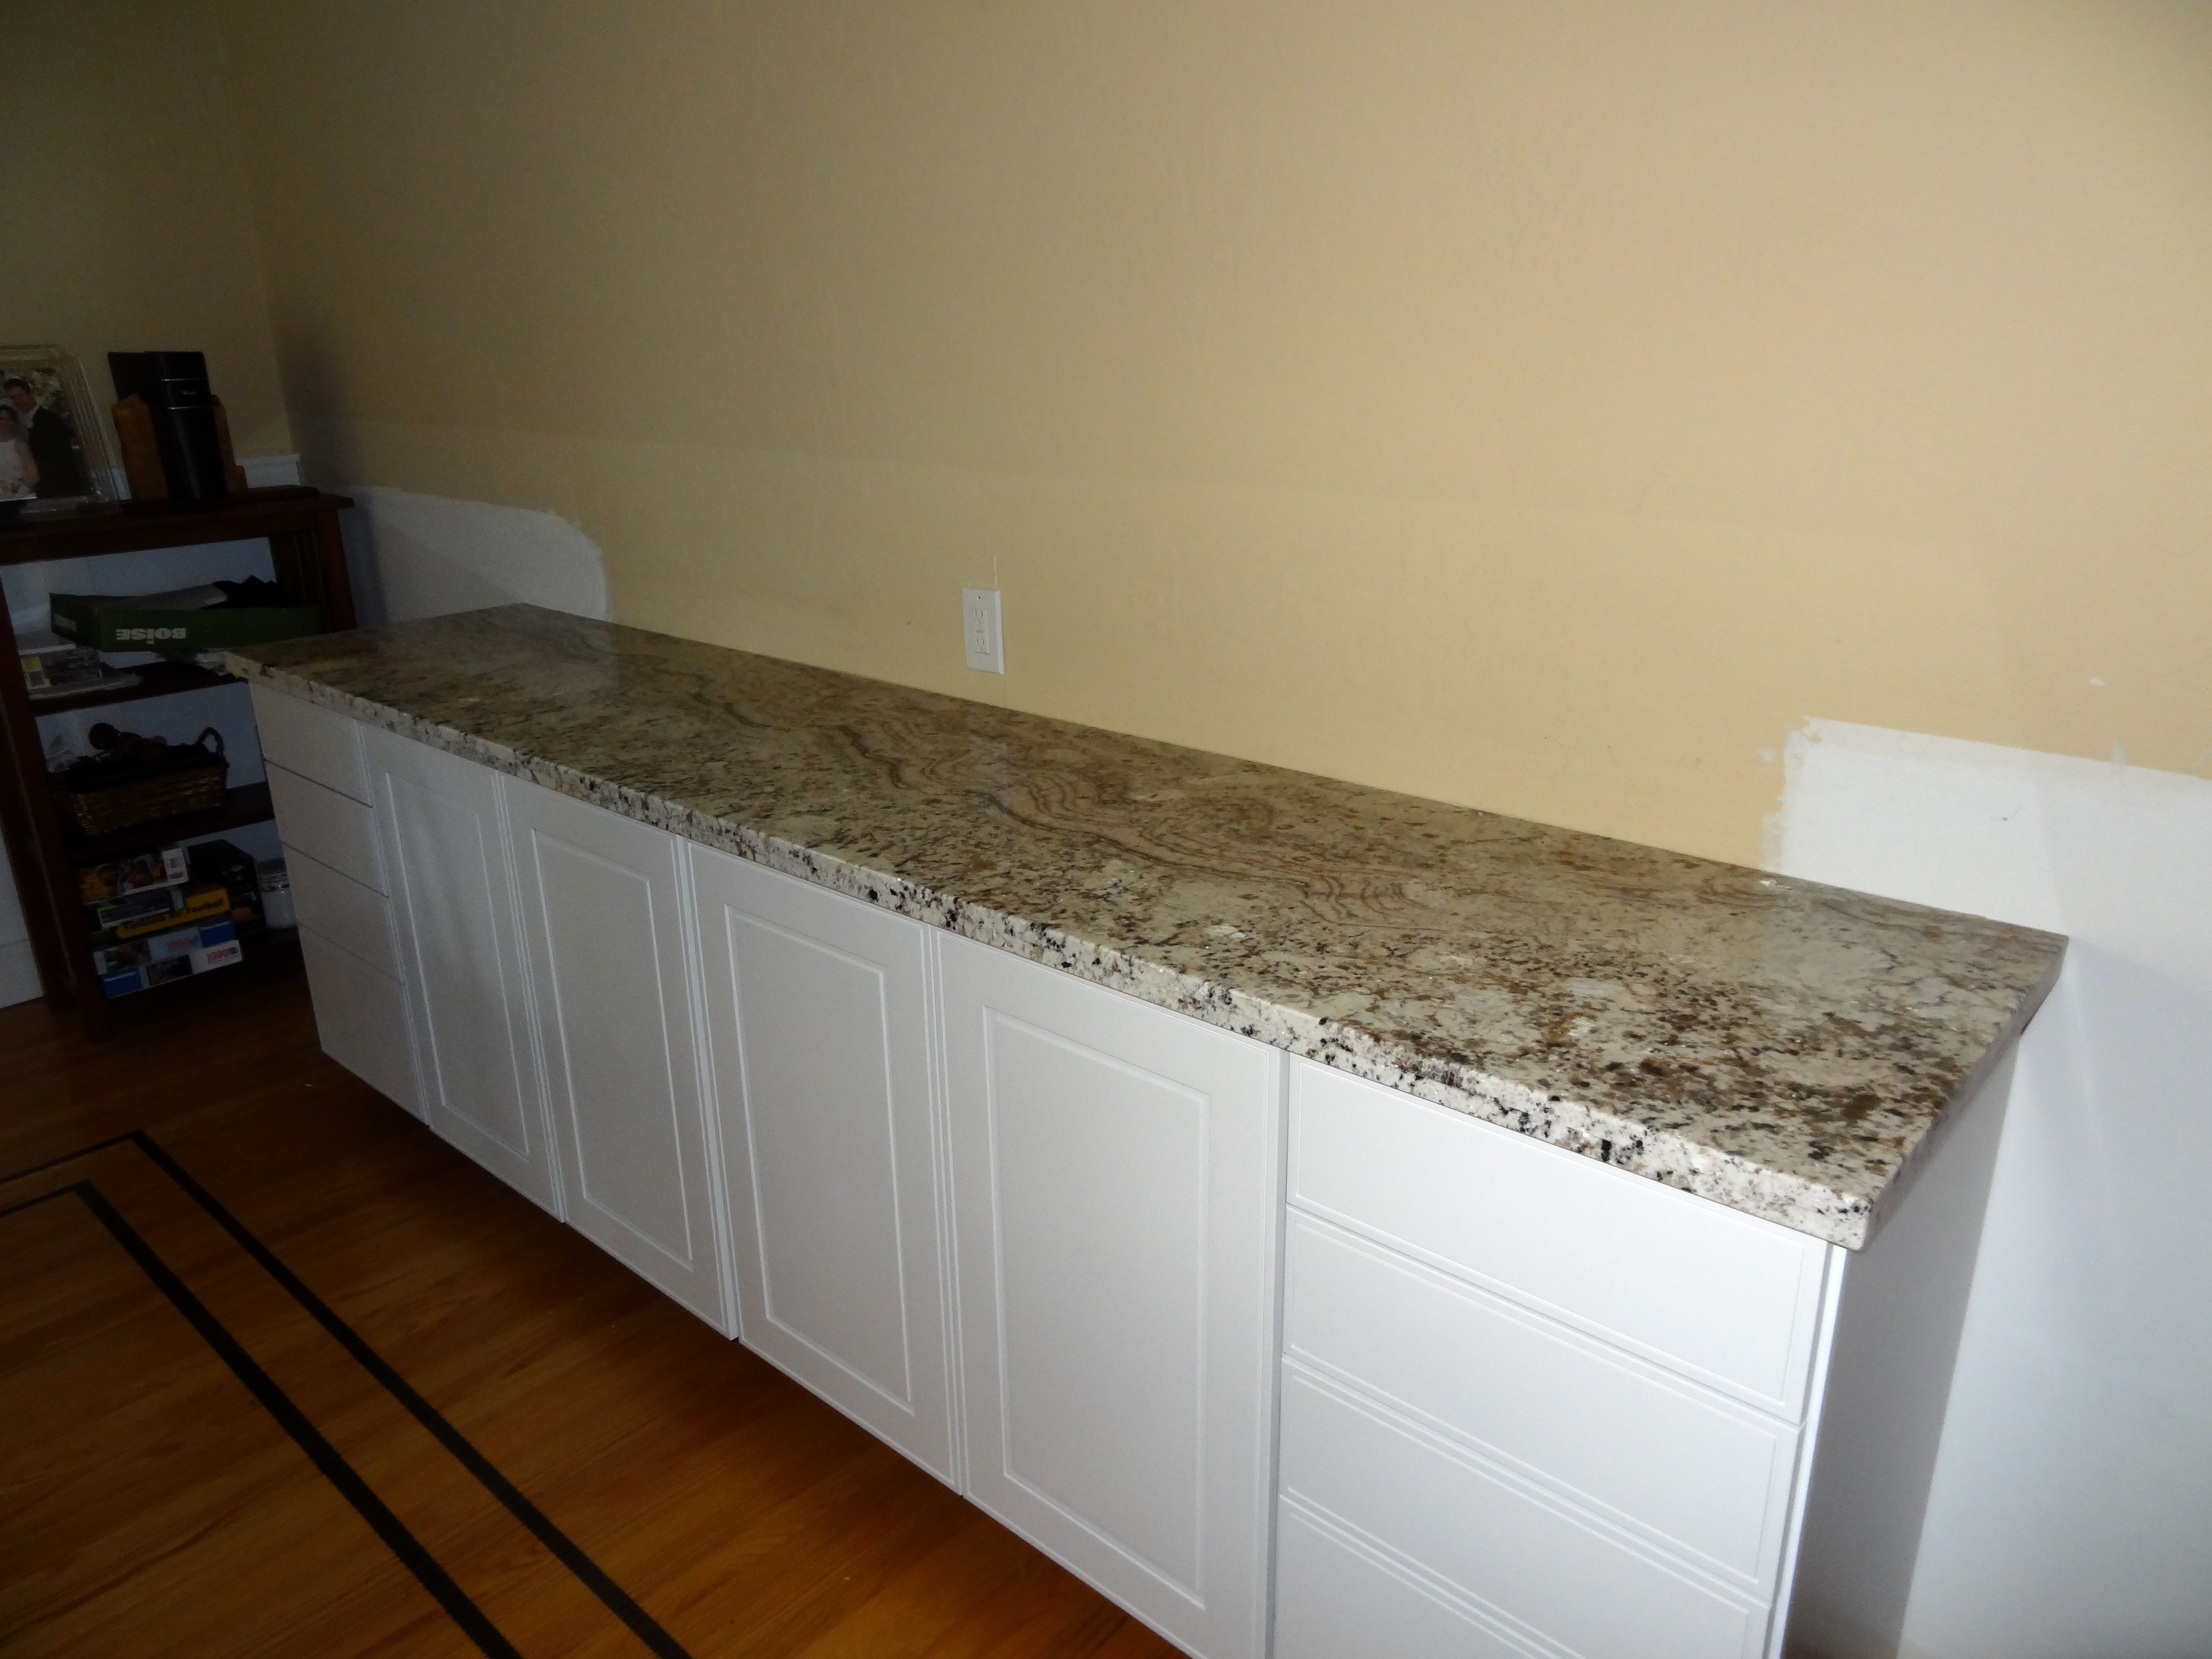 Building Kitchen Wall Cabinets Fauct Built In Buffet Dining Room Base